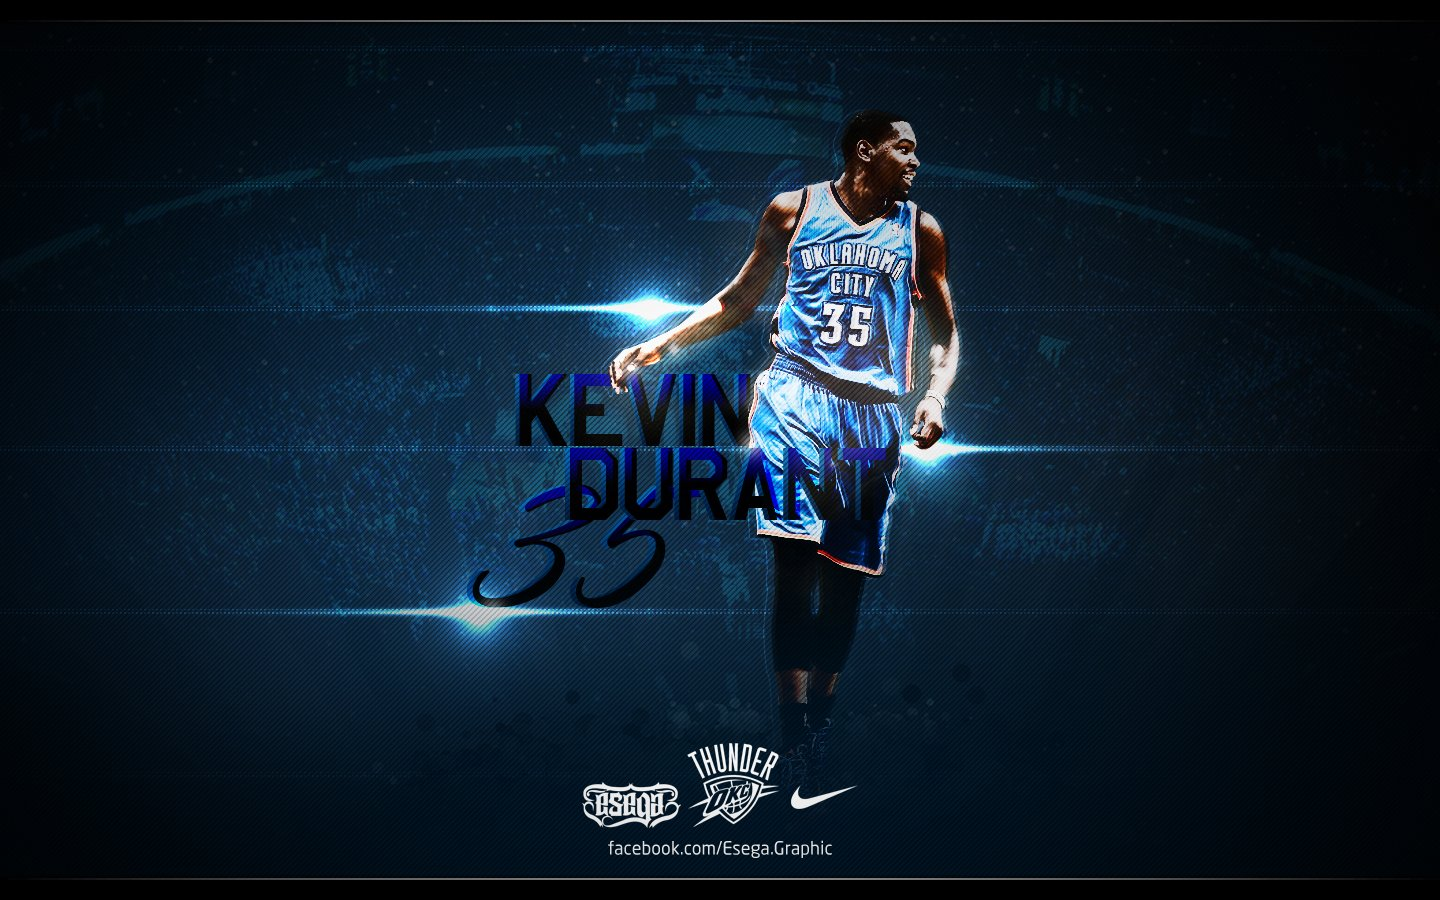 Download wallpaper other 2013 2015 esegagraphic kevin durant 1440x900